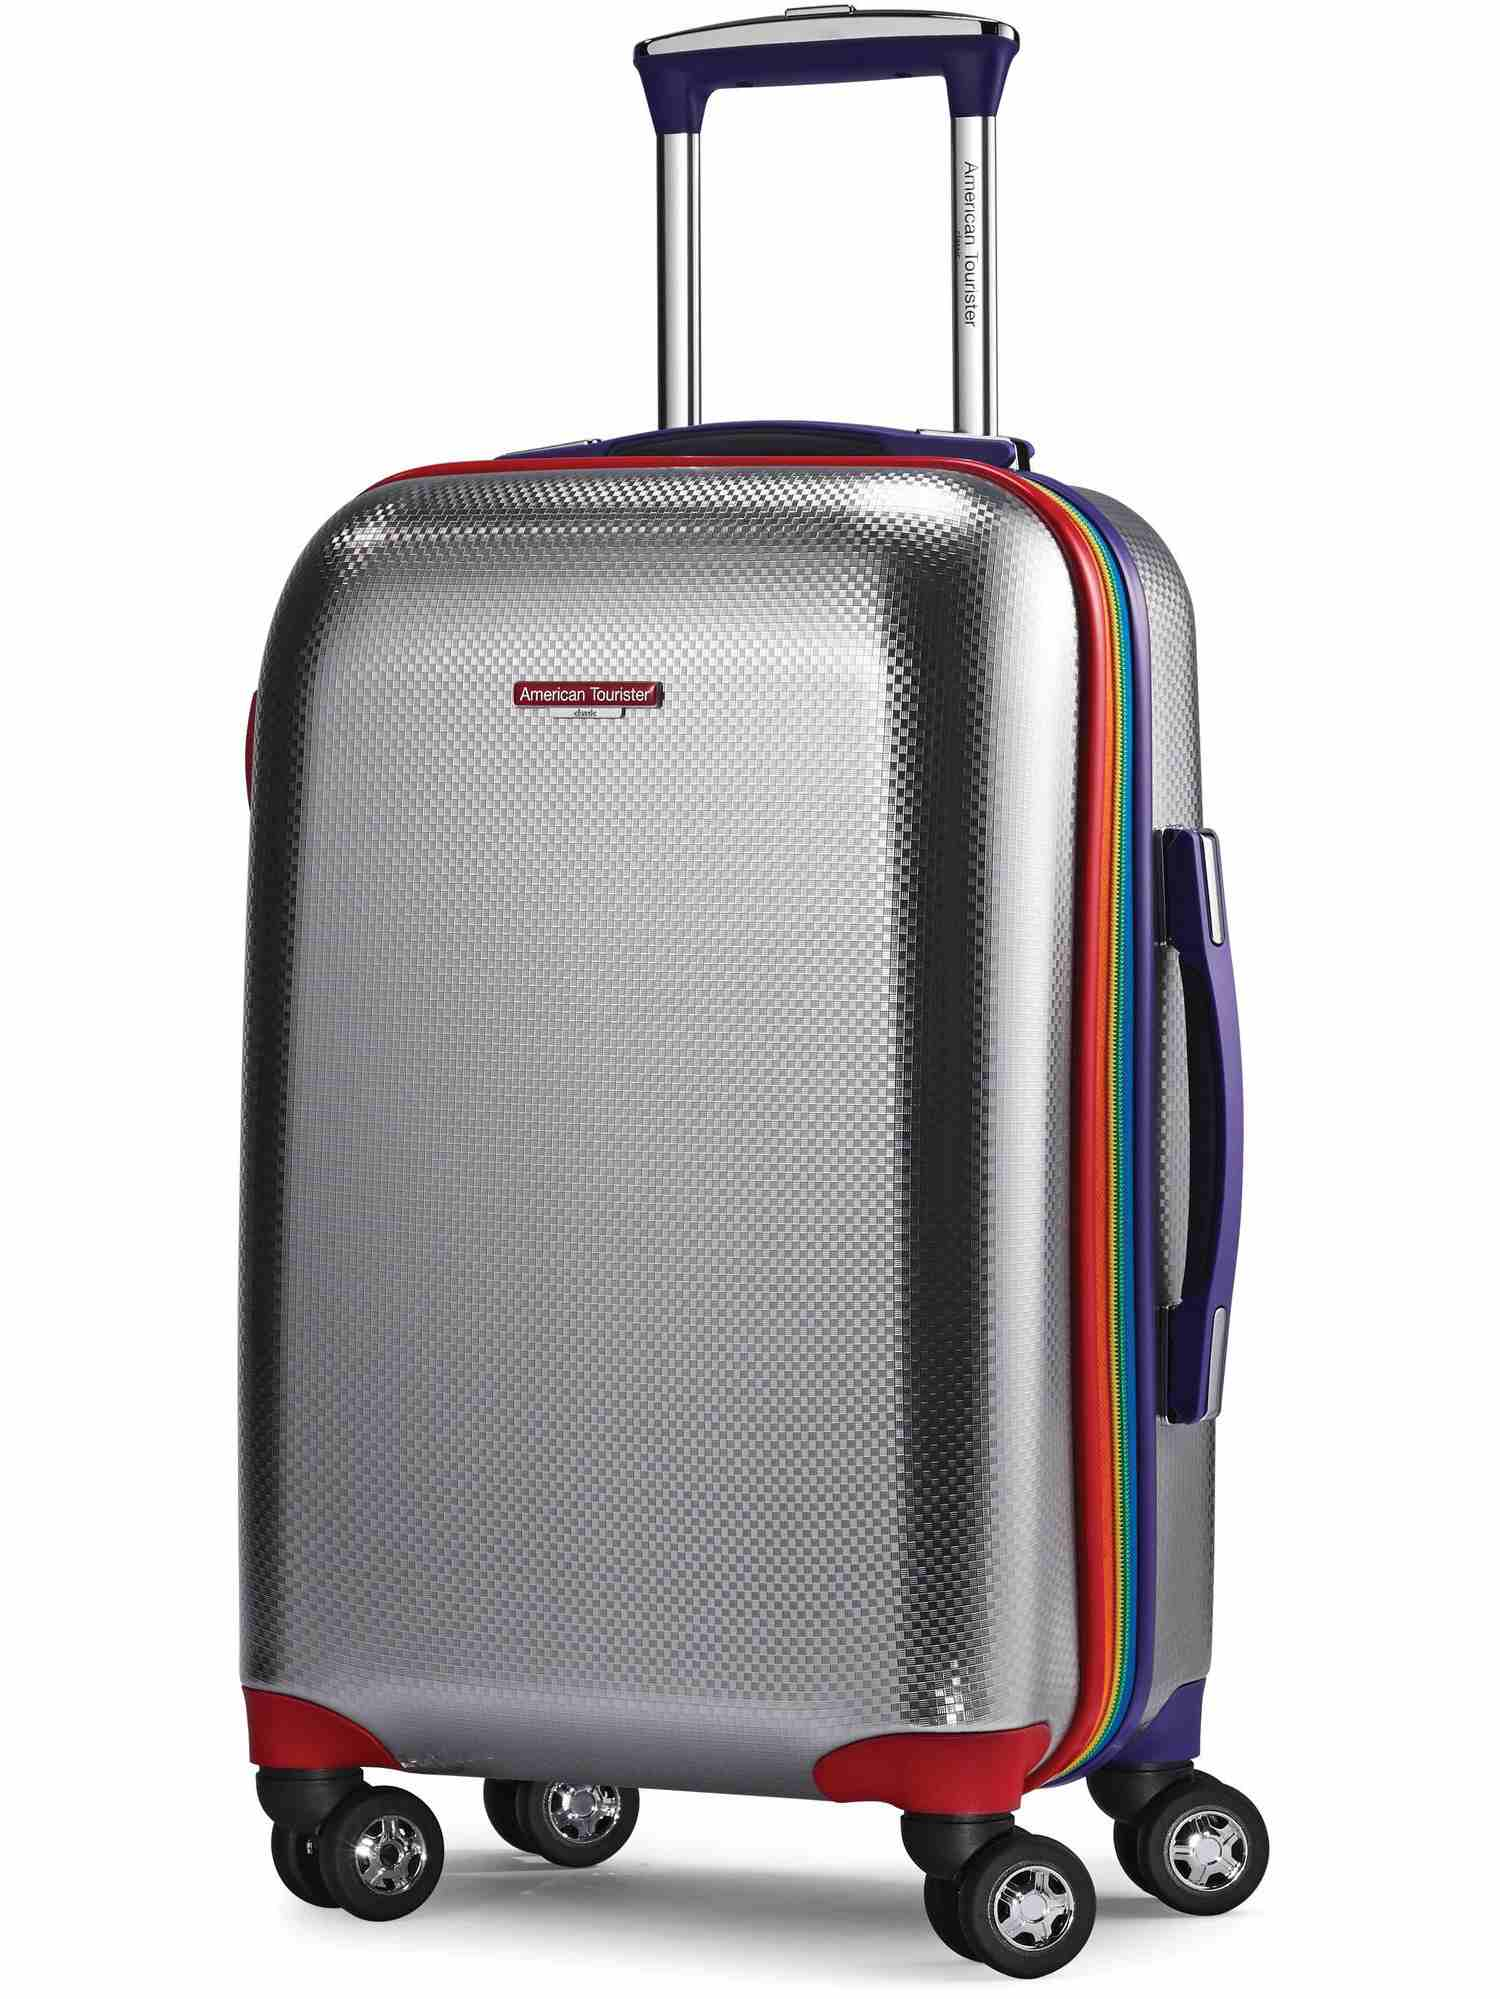 Best American Tourister Luggage Items for 2019 a6e2353118